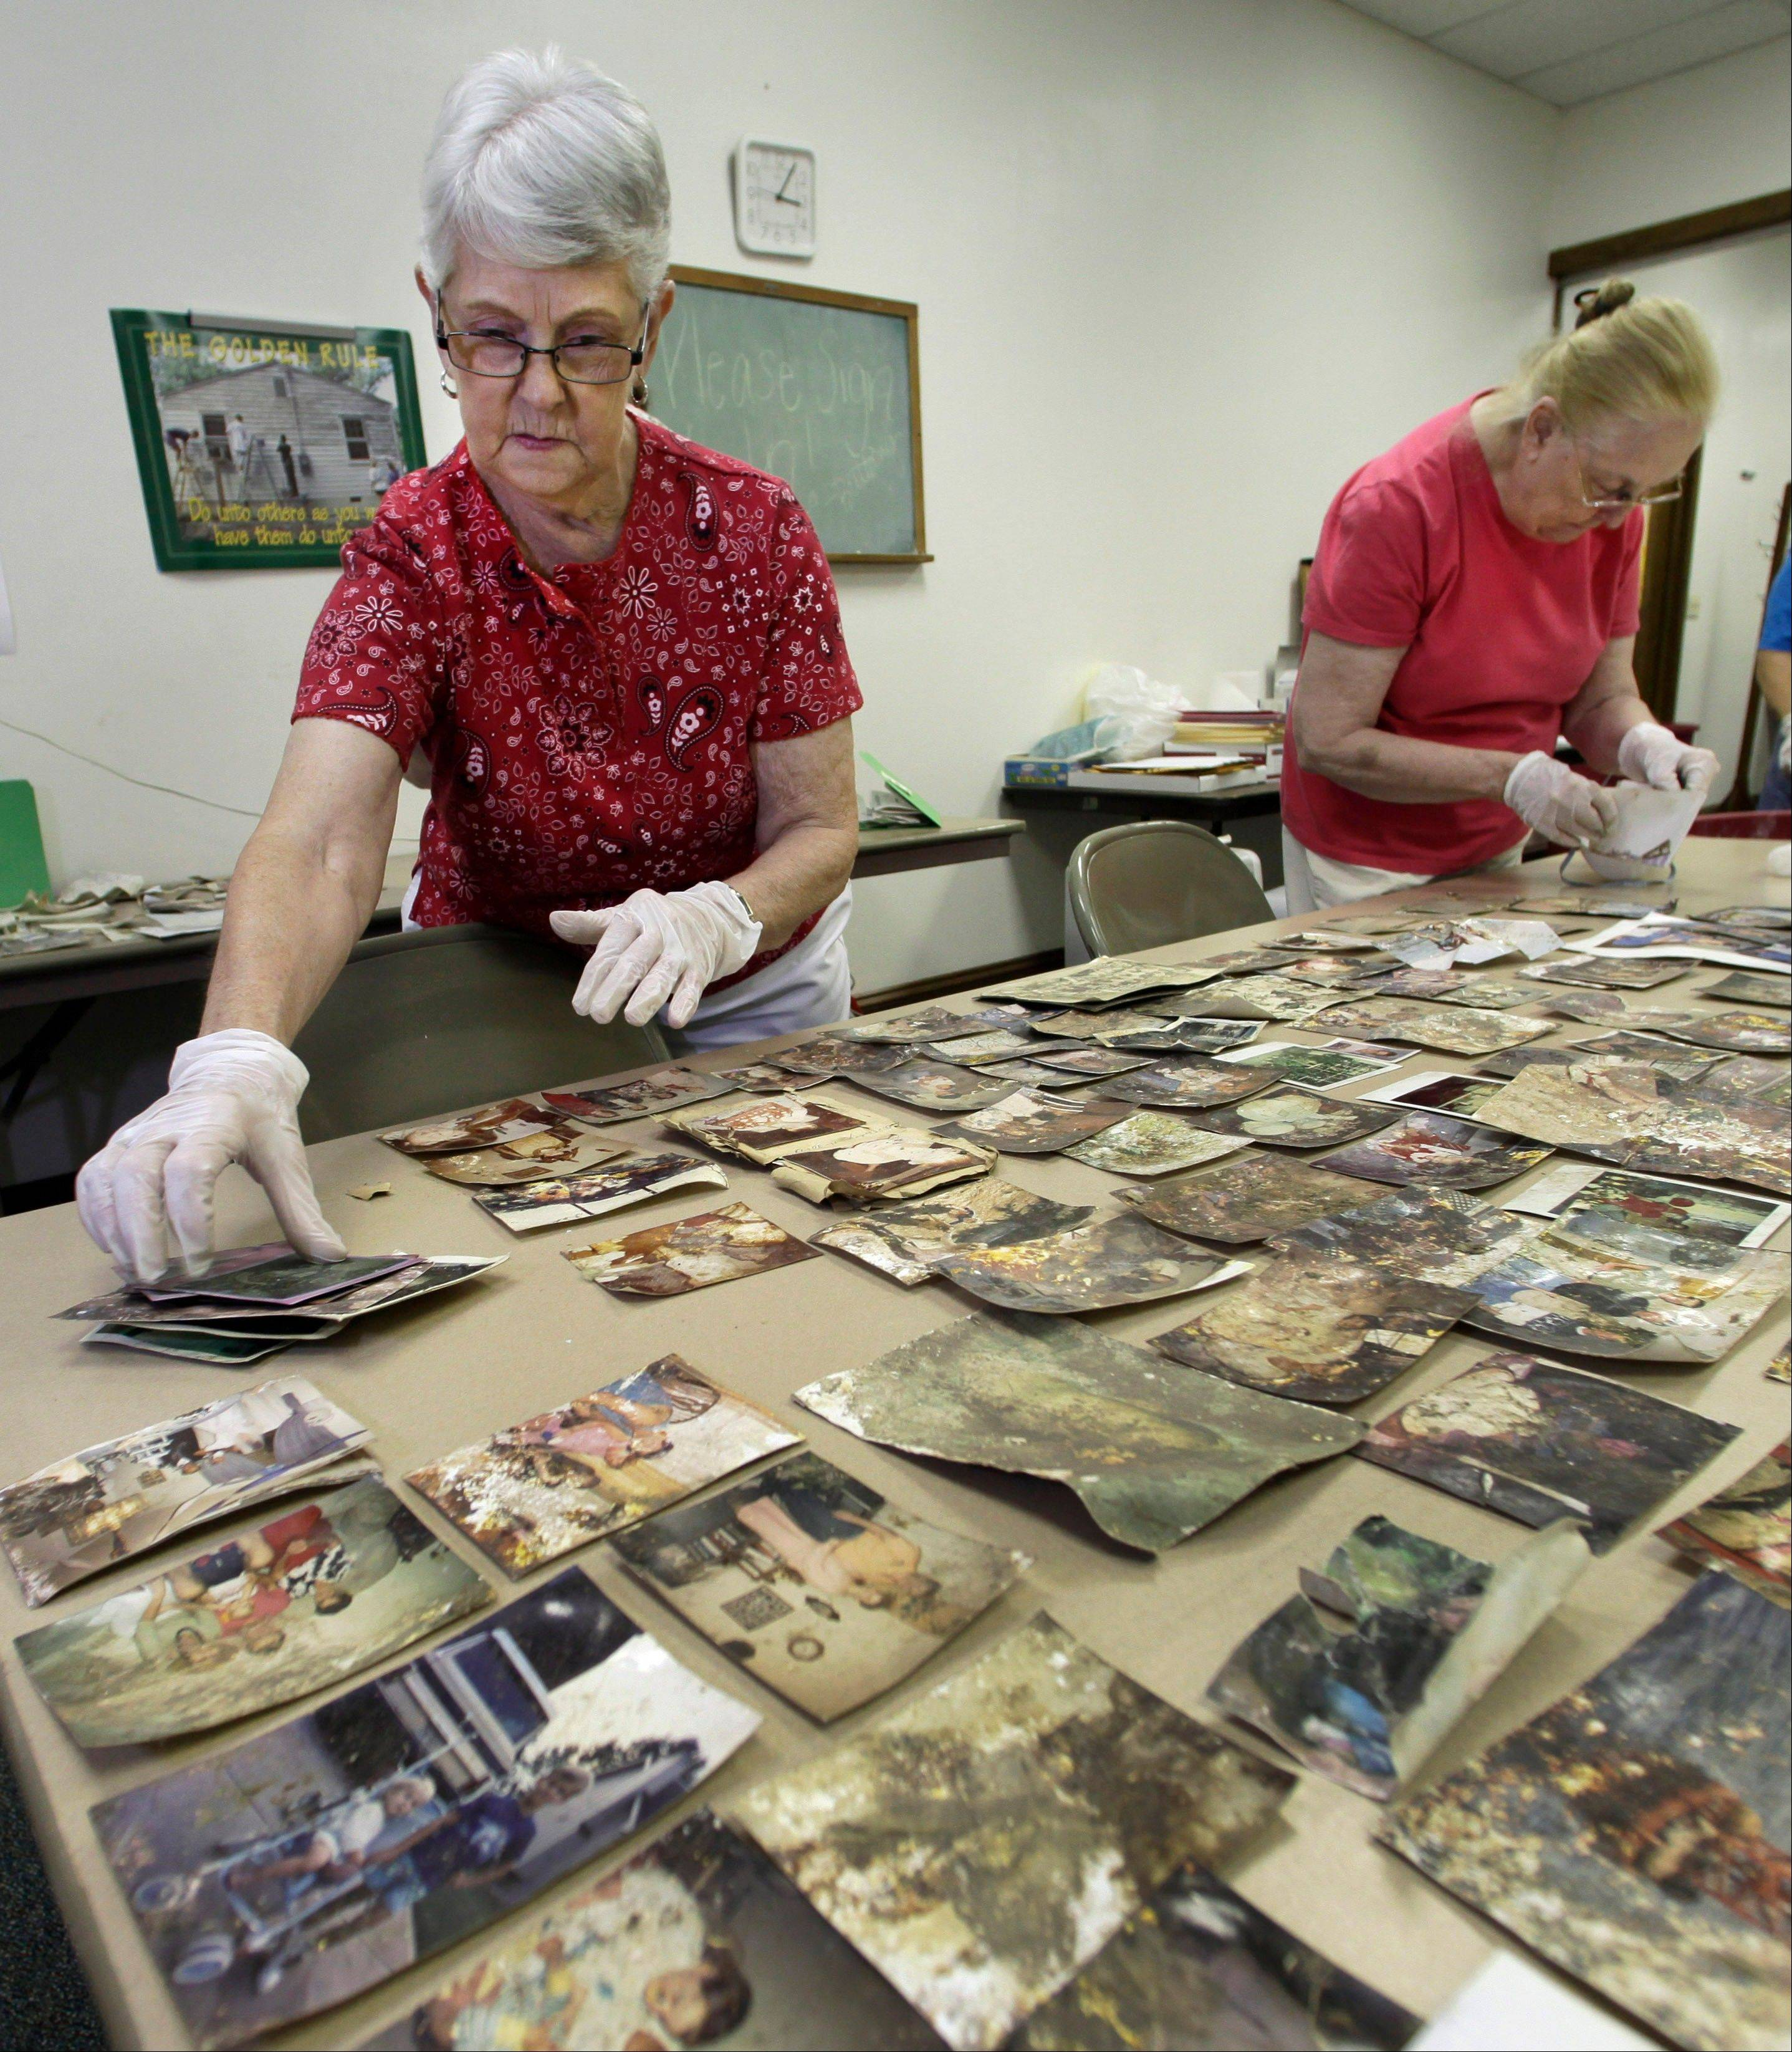 Margaret Hagenbaumer, left, and Martha Cardwell, volunteers at the First Baptist Church in Carthage, Mo., clean and sort photos and other personal documents found among rubble after a powerful EF-5 tornado destroyed a large swath of nearby Joplin, Mo. on May 22, 2011. The church has taken on the task of preserving thousands of lost photos and reuniting them with their owners.